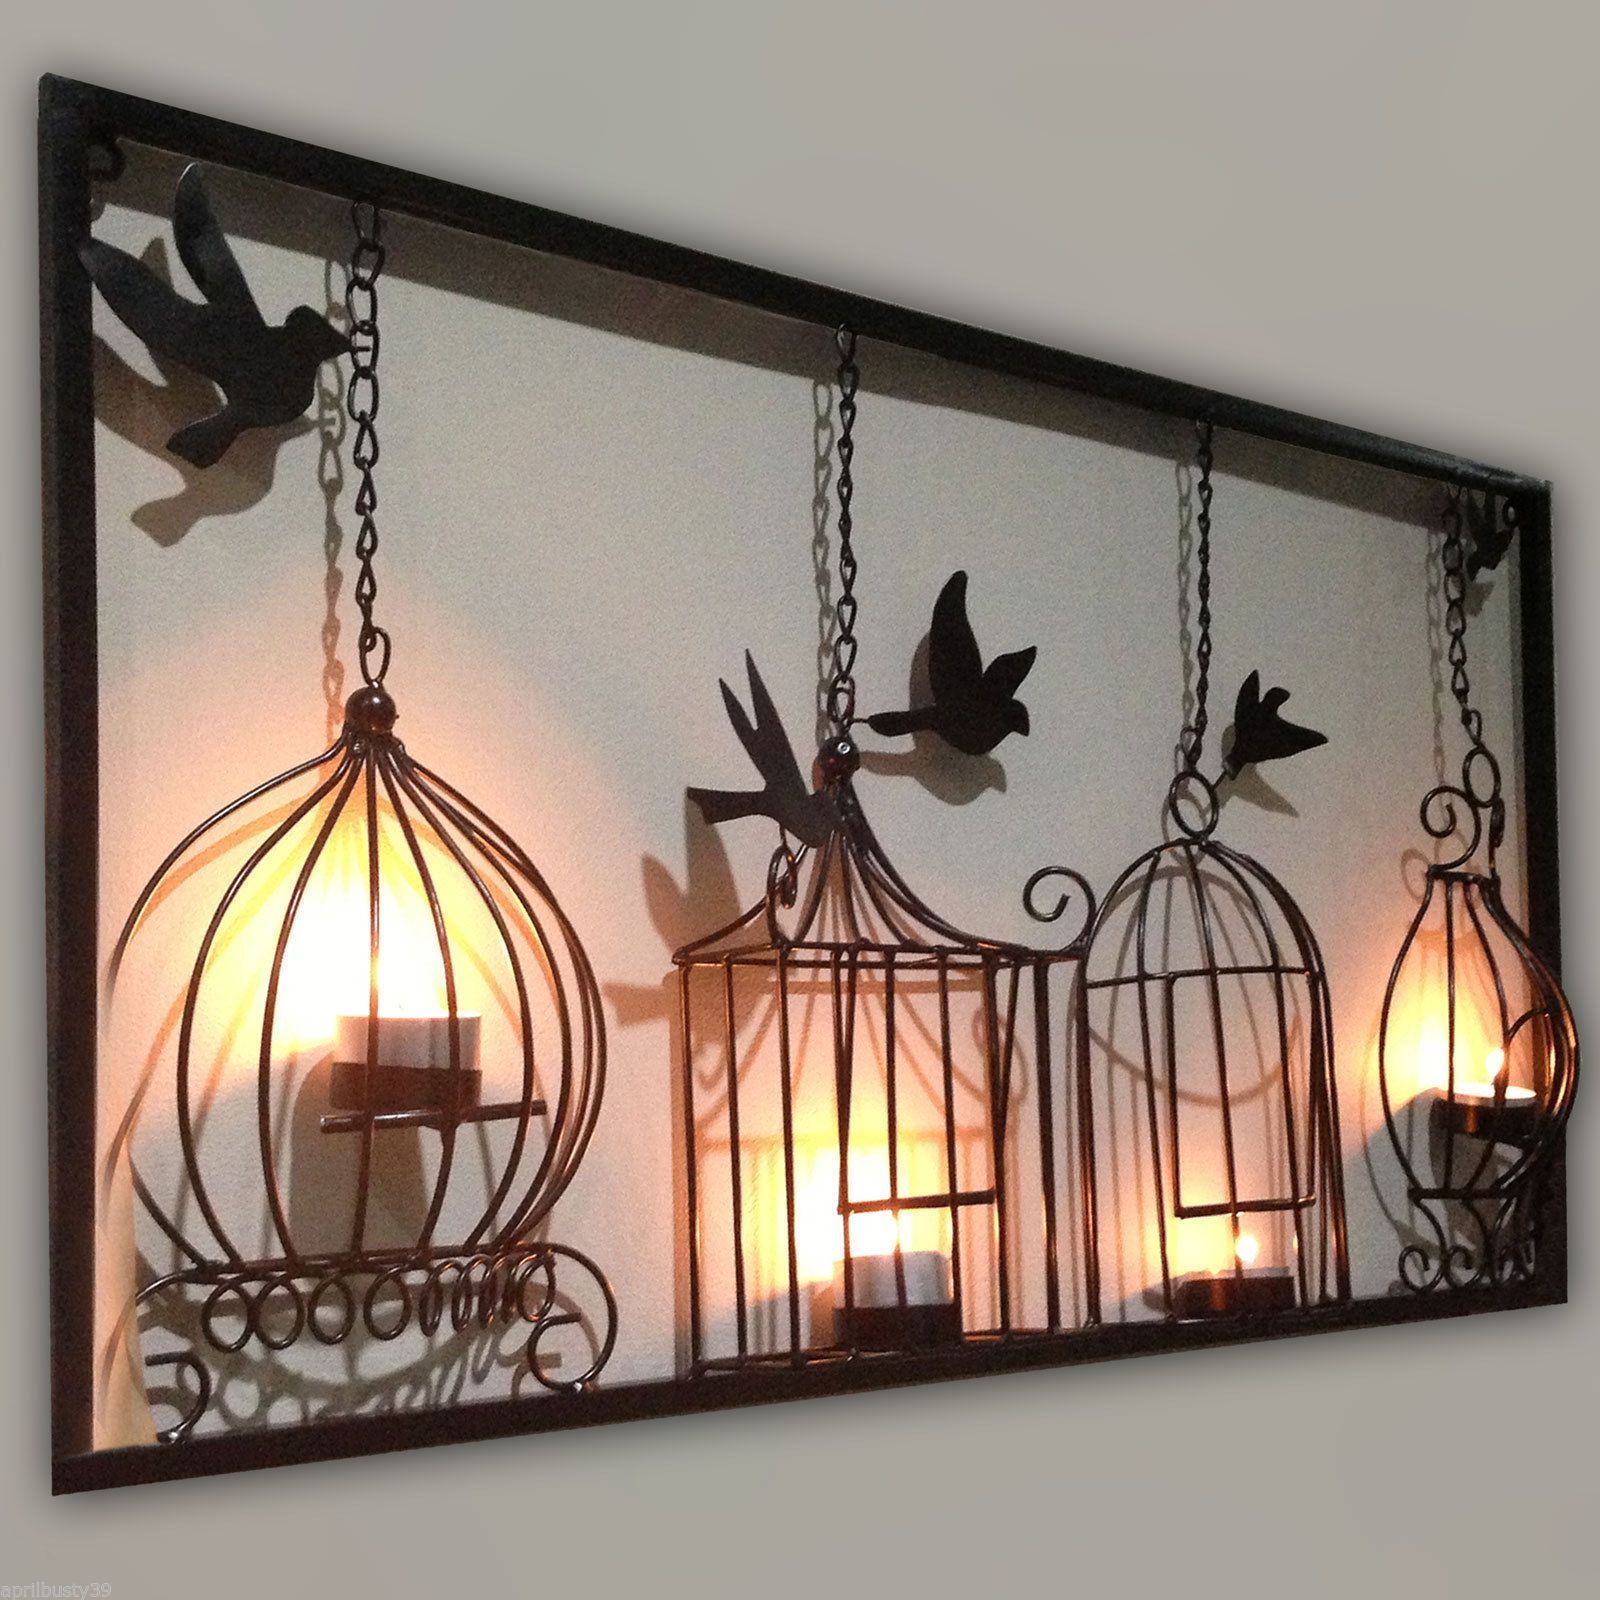 Black Wrought Iron Wall Decor Birdcage Tea Light Wall Art Metal Wall Hanging Candle Holder Black